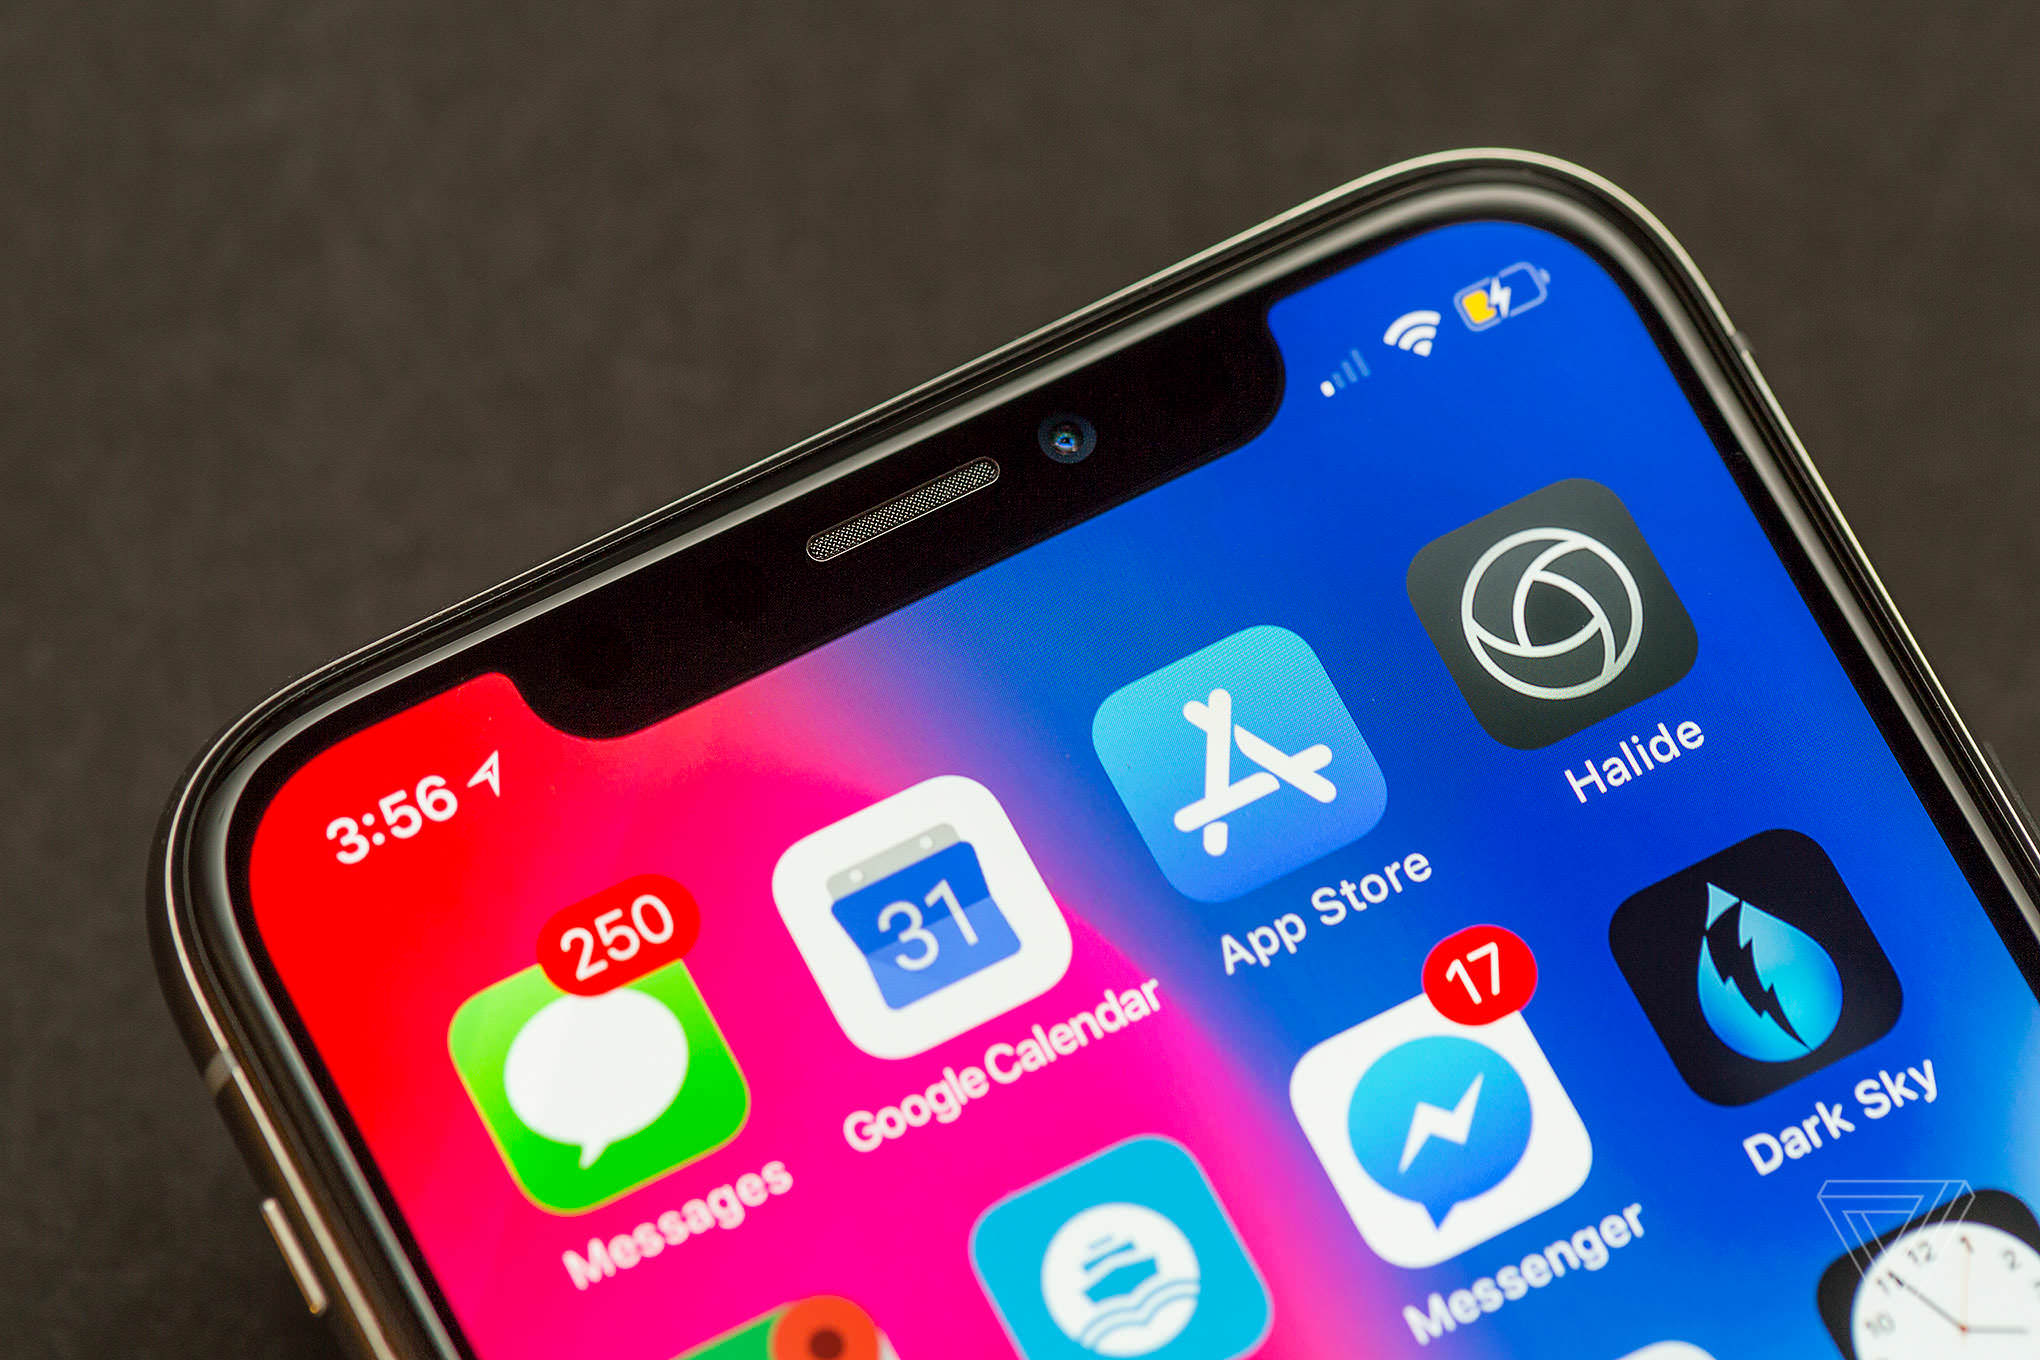 launcher theme iphone x тема айфон х на телефон андроид